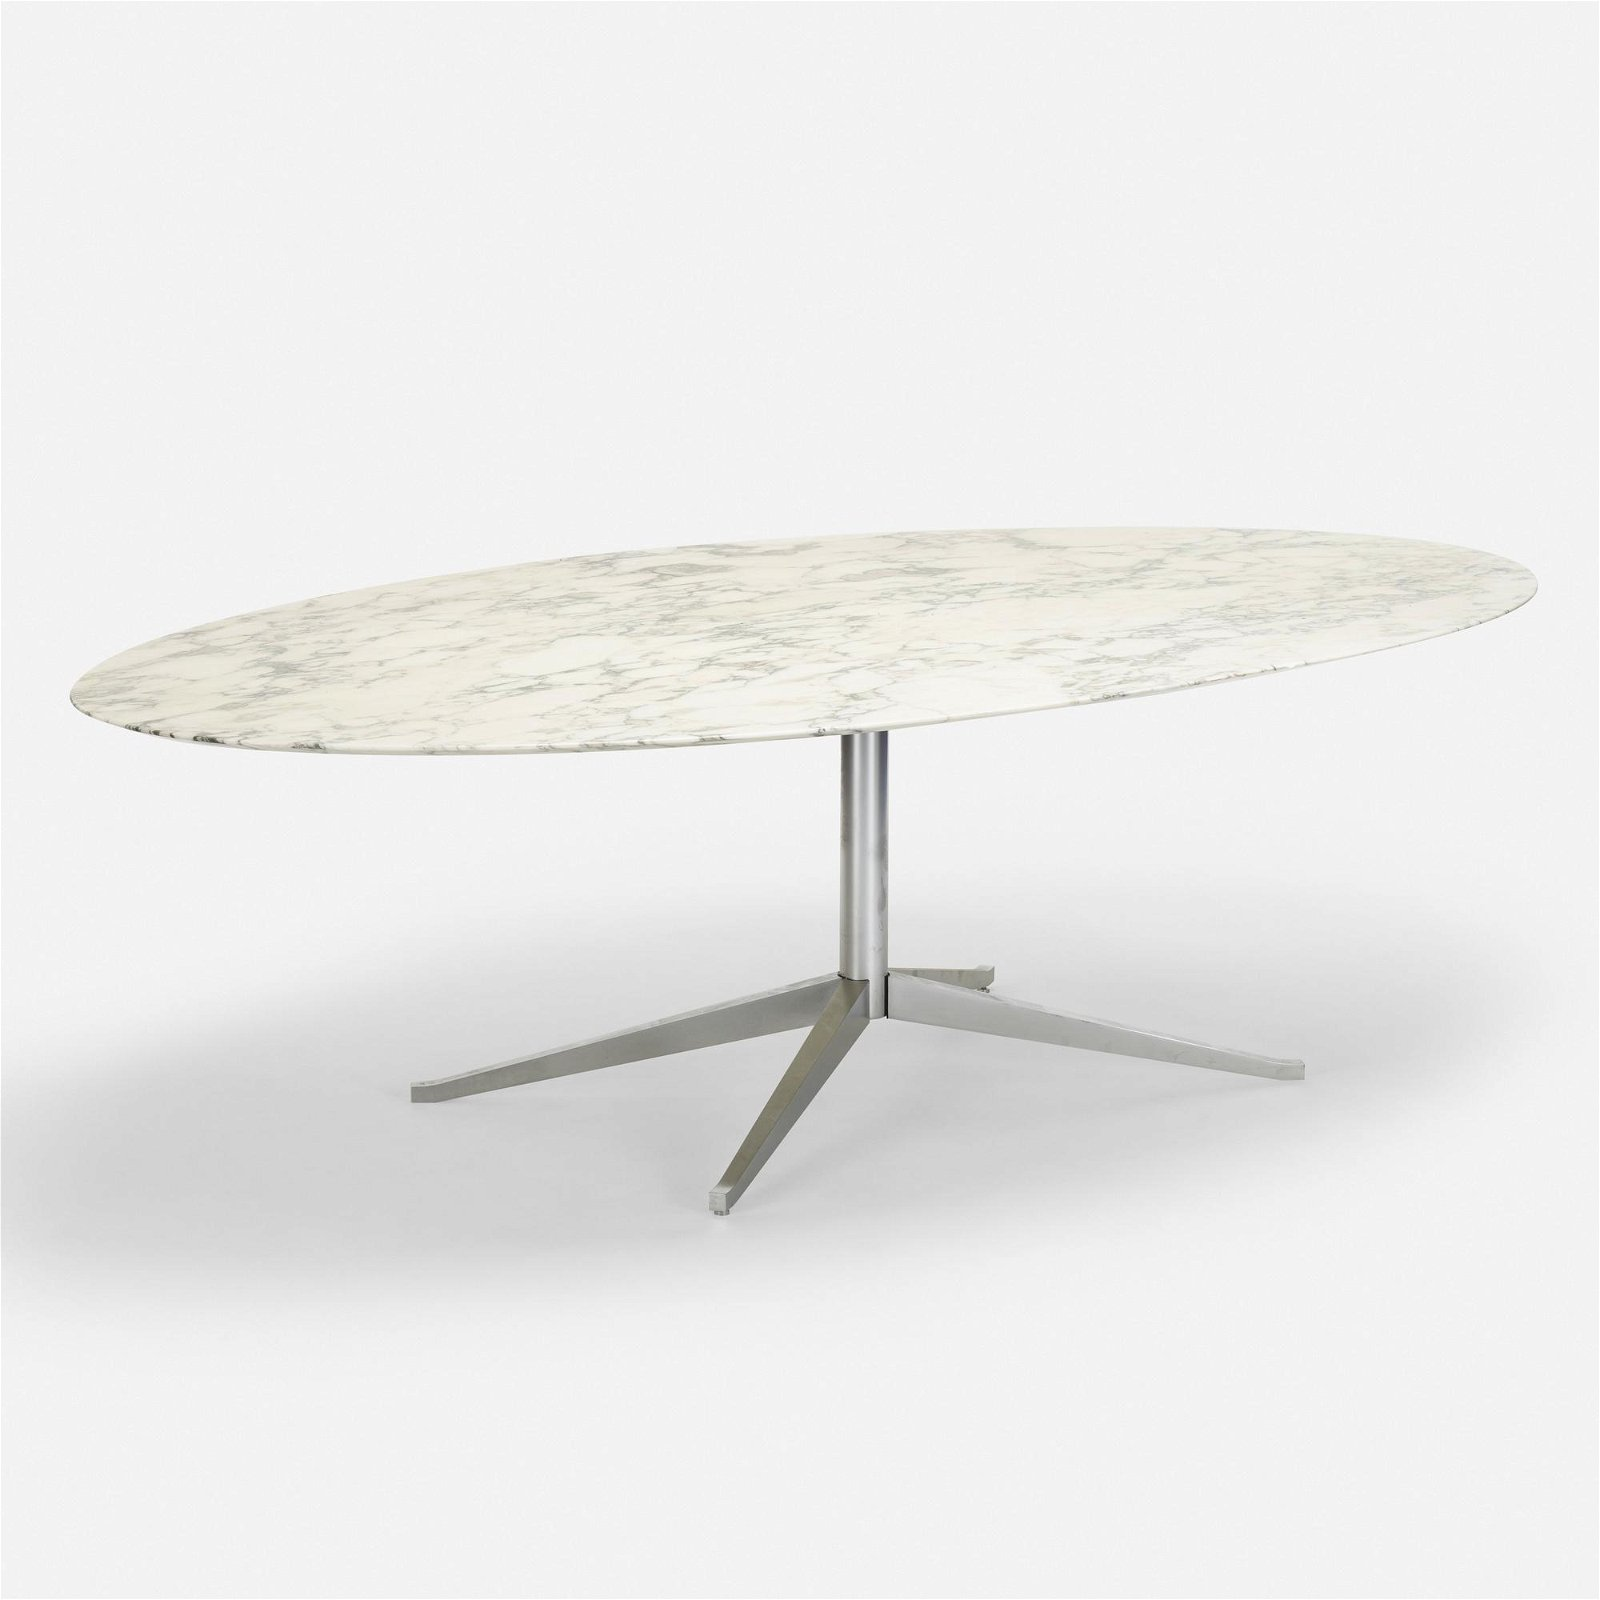 Florence Knoll, dining table